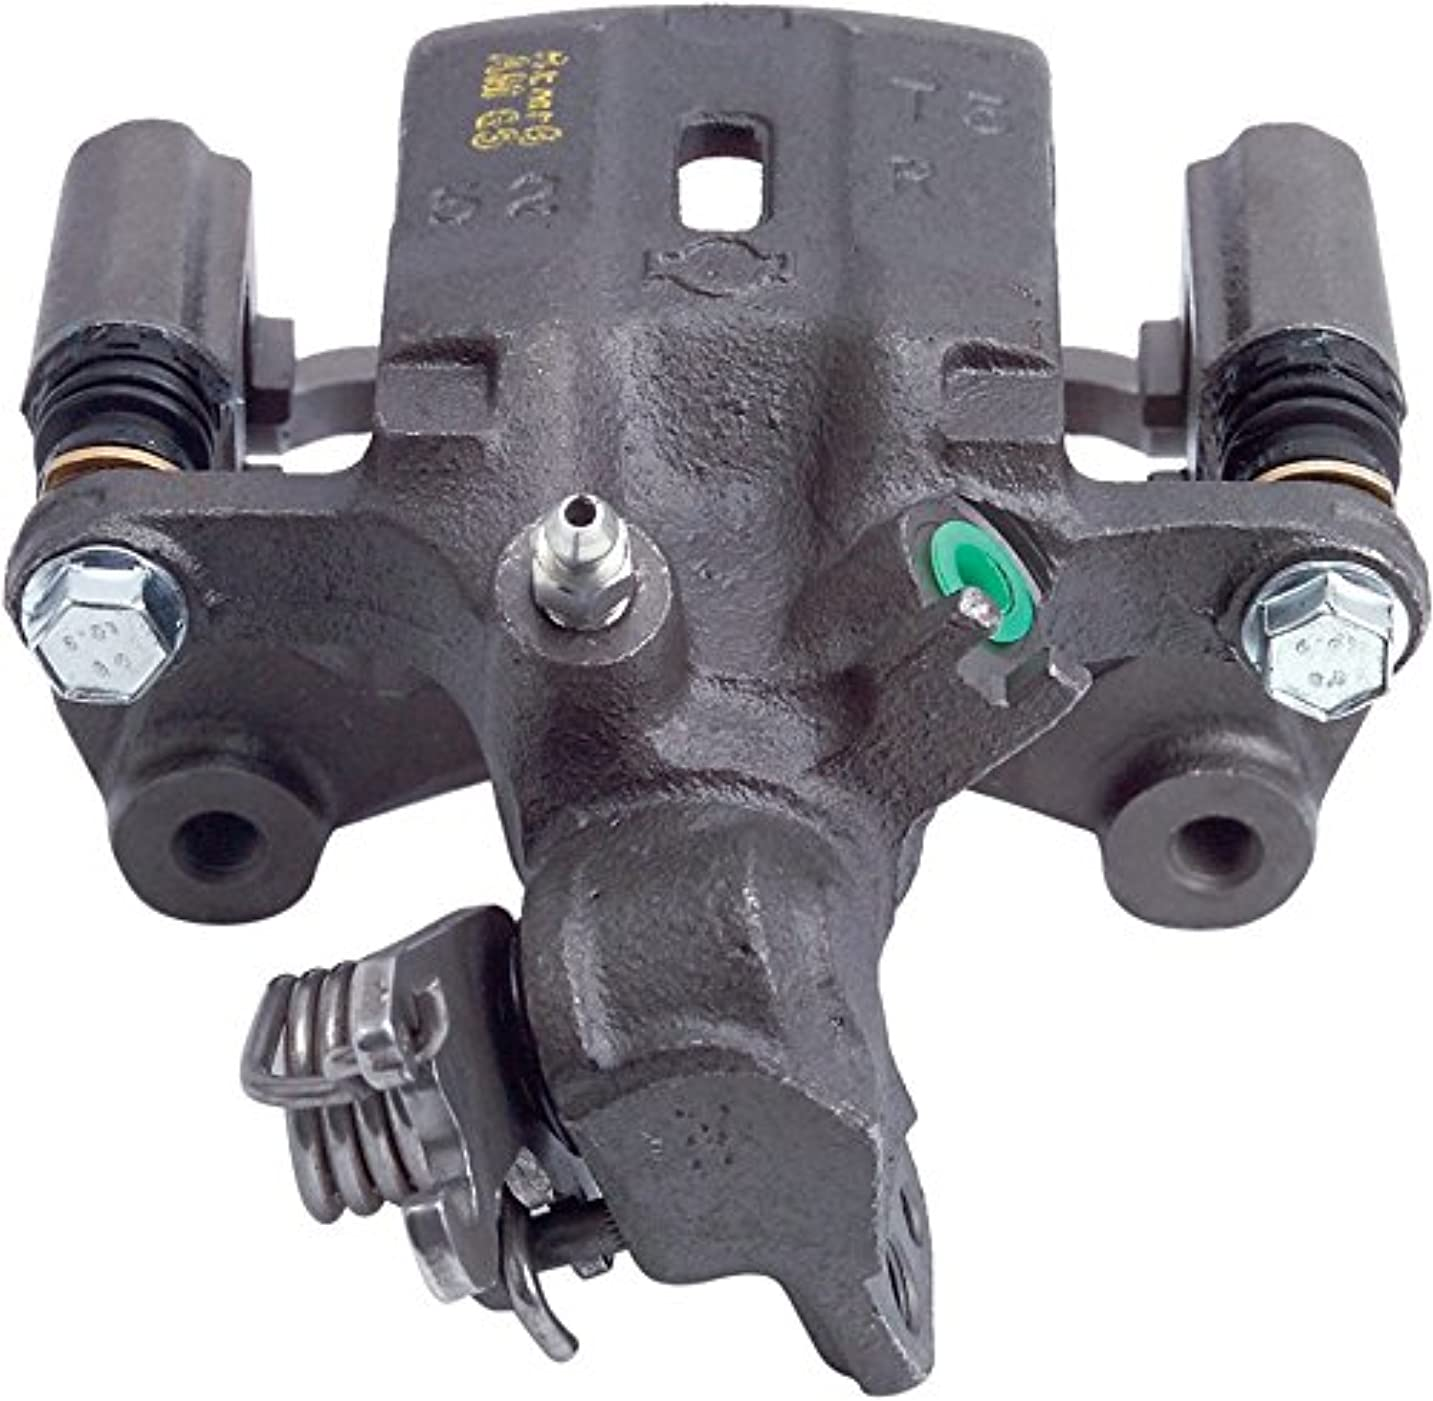 Cardone 19-B2856 Remanufactured Import Friction Ready (Unloaded) Brake Caliper nbfpagc688